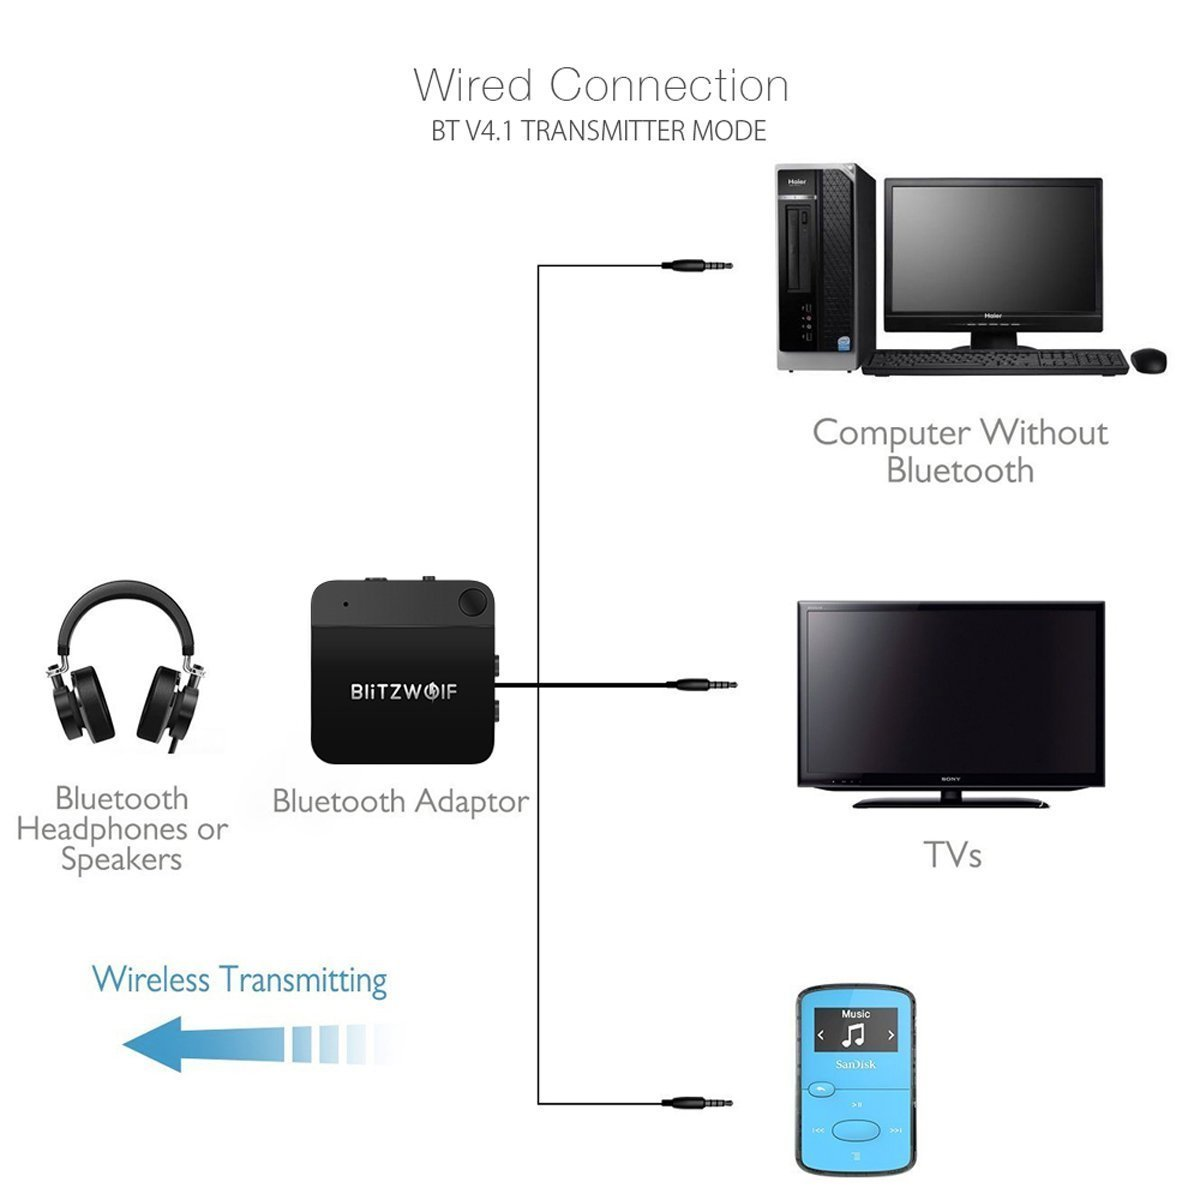 Blitzwolf BW-BR2 Bluetooth reveiver and transmitter